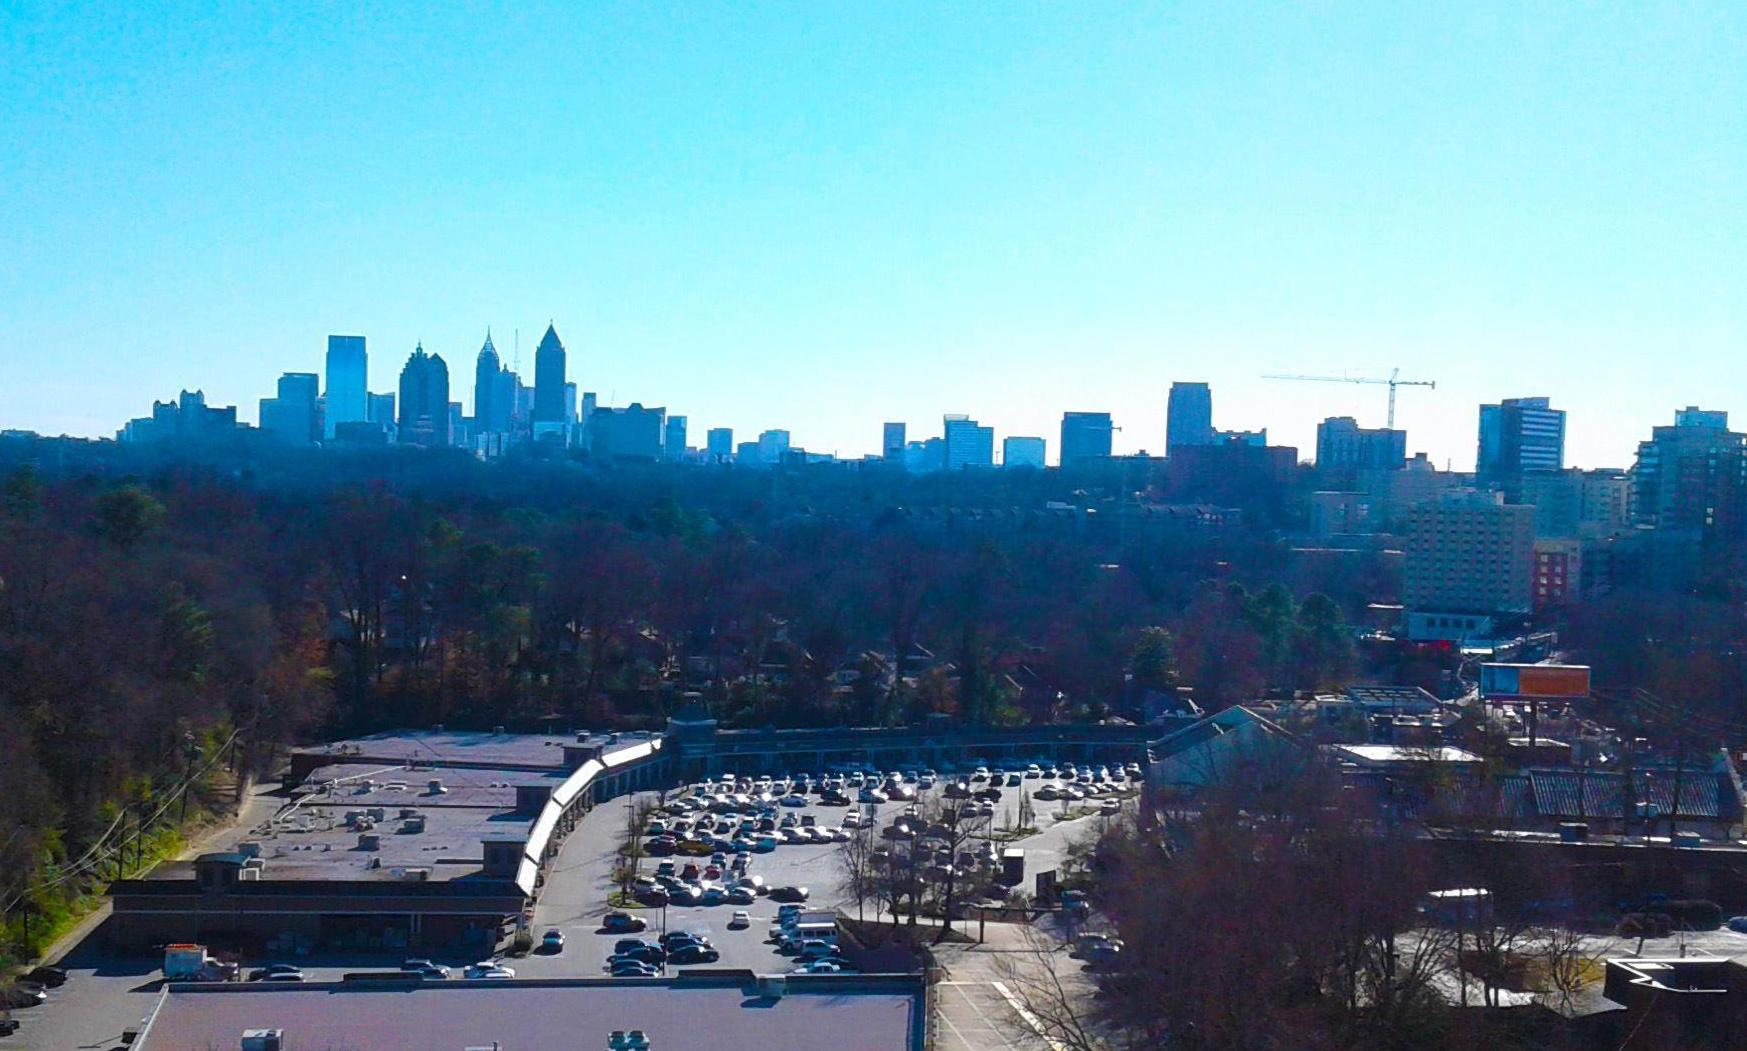 The view with a blue sky across a shopping center to the high-rises of Midtown Atlanta.